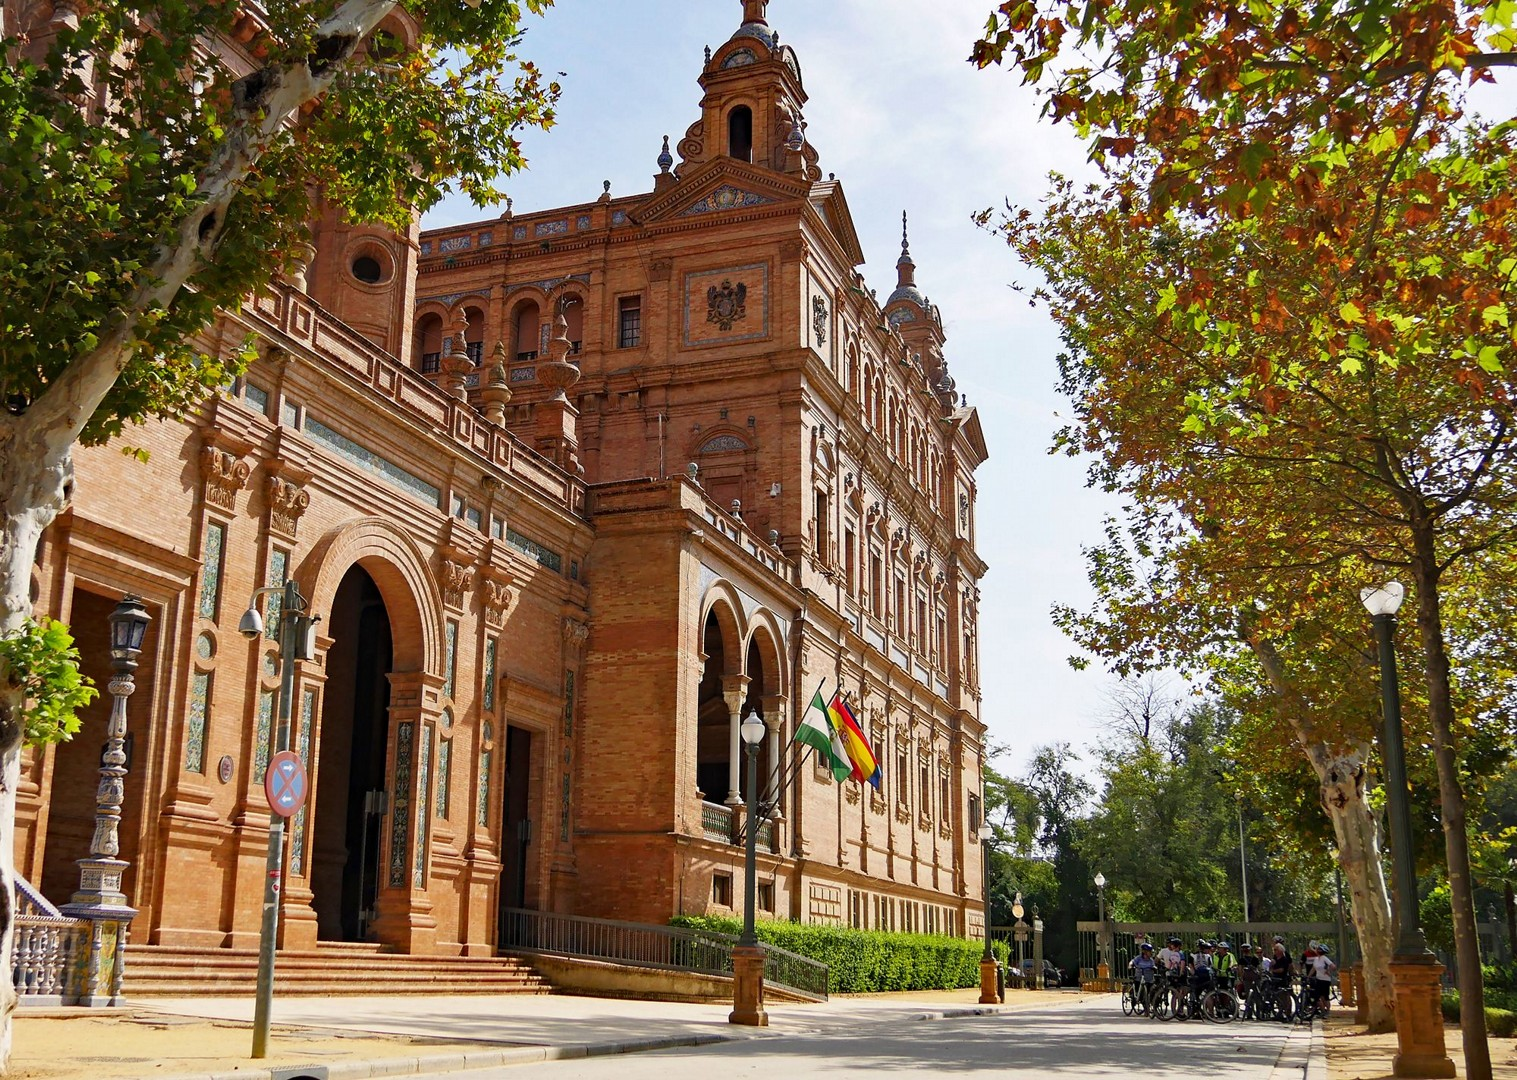 southern-spain-granada-to-seville-guided-leisure-cycling-holiday.jpg - Spain - Granada to Seville - Guided Leisure Cycling Holiday - Leisure Cycling